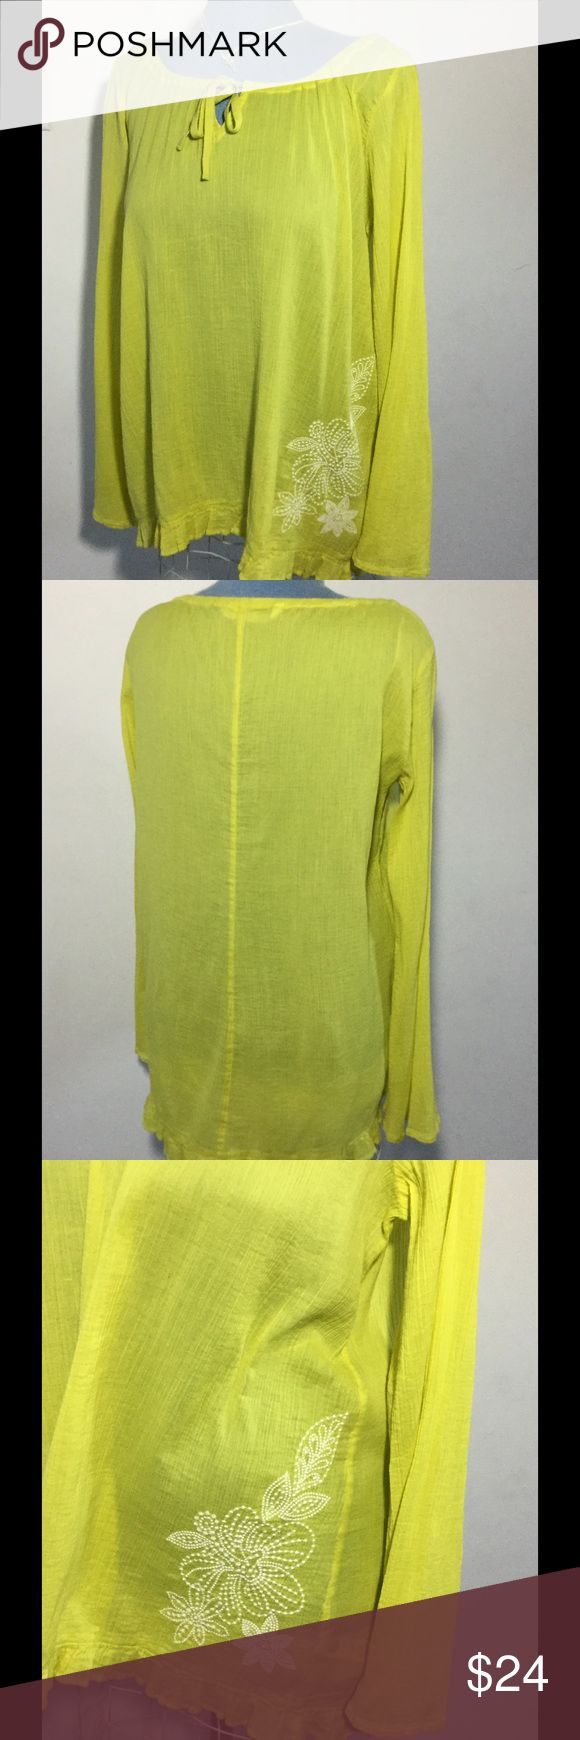 Big and Tall Size M Long Sleeve Lime Green Shirt Long Sleeve Lime Green Shirt with ruffled hem, flair sleeves and embroidered flower embellishment at left bottom of shirt. Athlete Brand, Design in Sonoma County made in India. Machine was cold, 100% Cotton  Size medium Big and Tall Athleta Tops Tunics